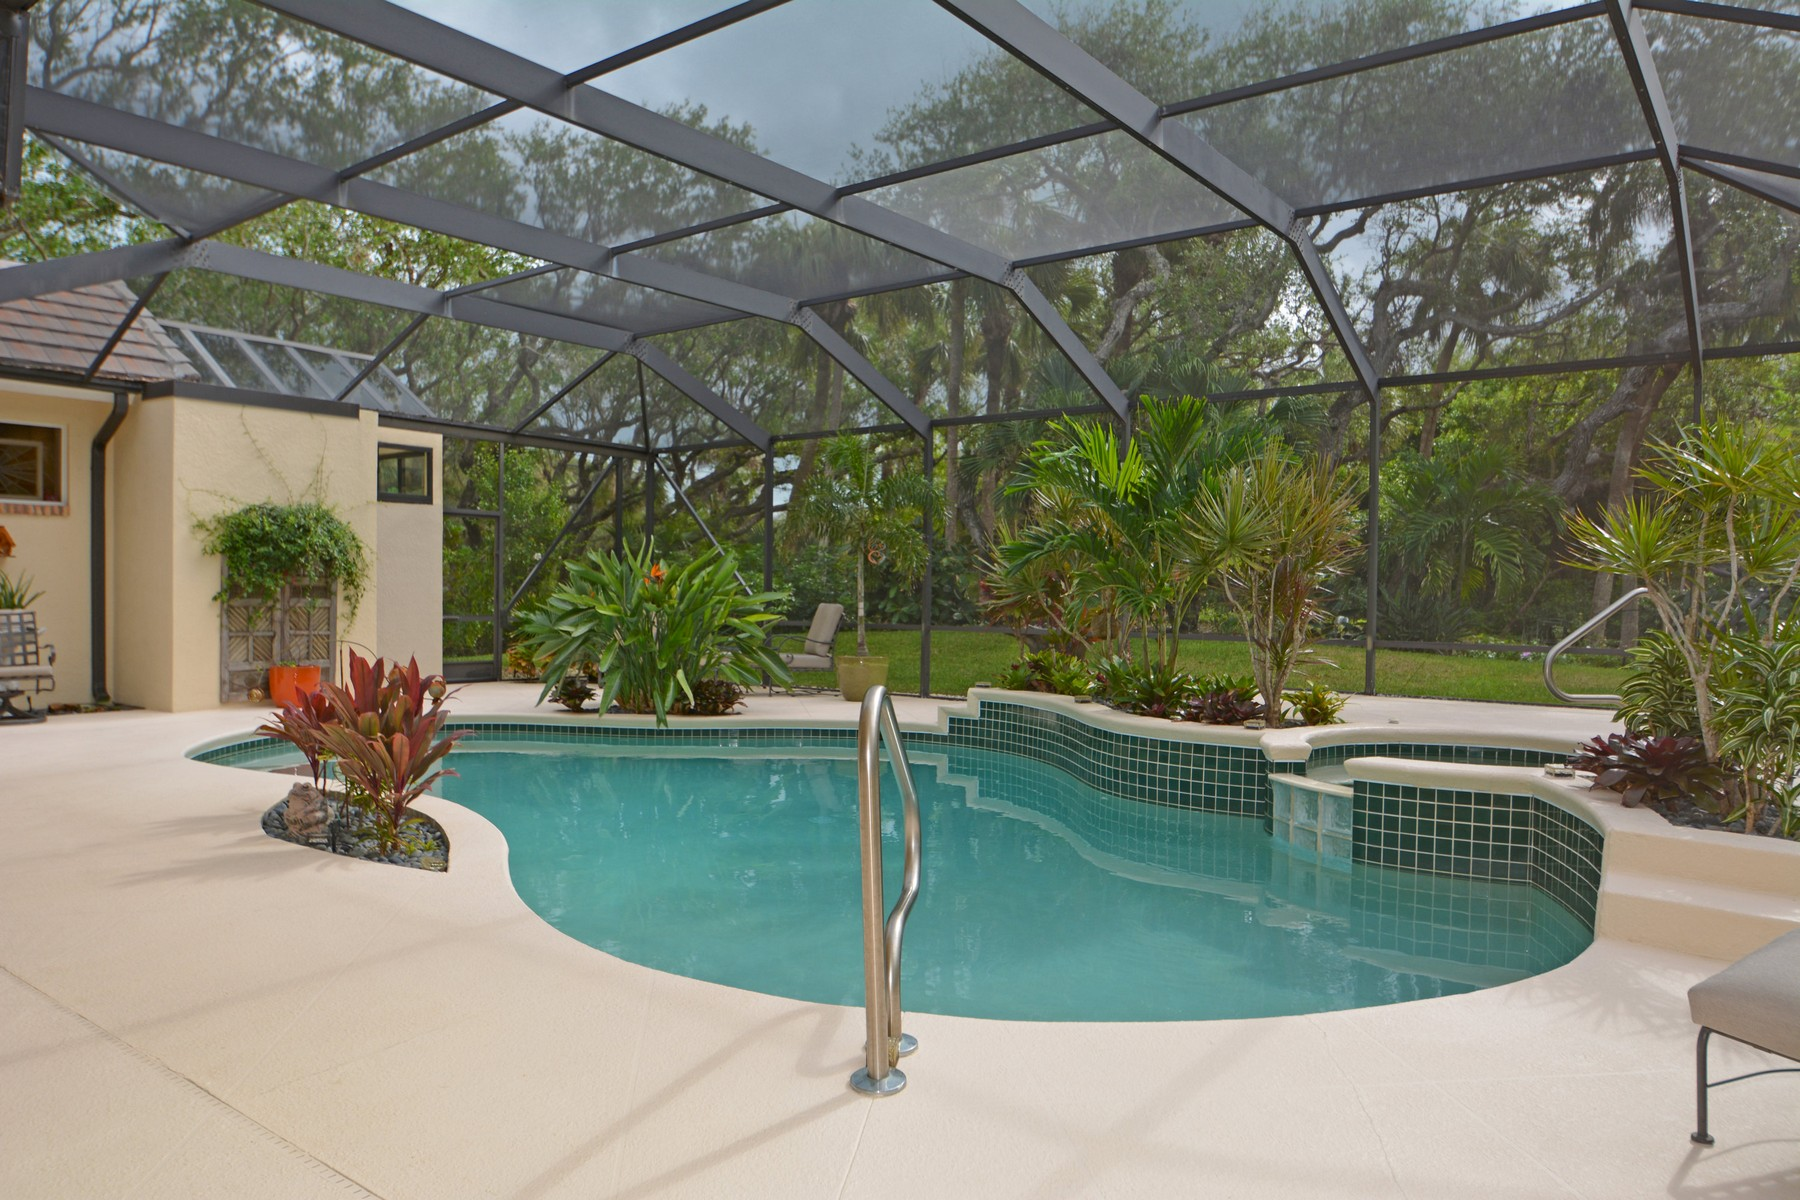 Additional photo for property listing at Magnificent Home with Exquisite Landscaping 11 S. White Jewel Court Indian River Shores, Florida 32963 United States